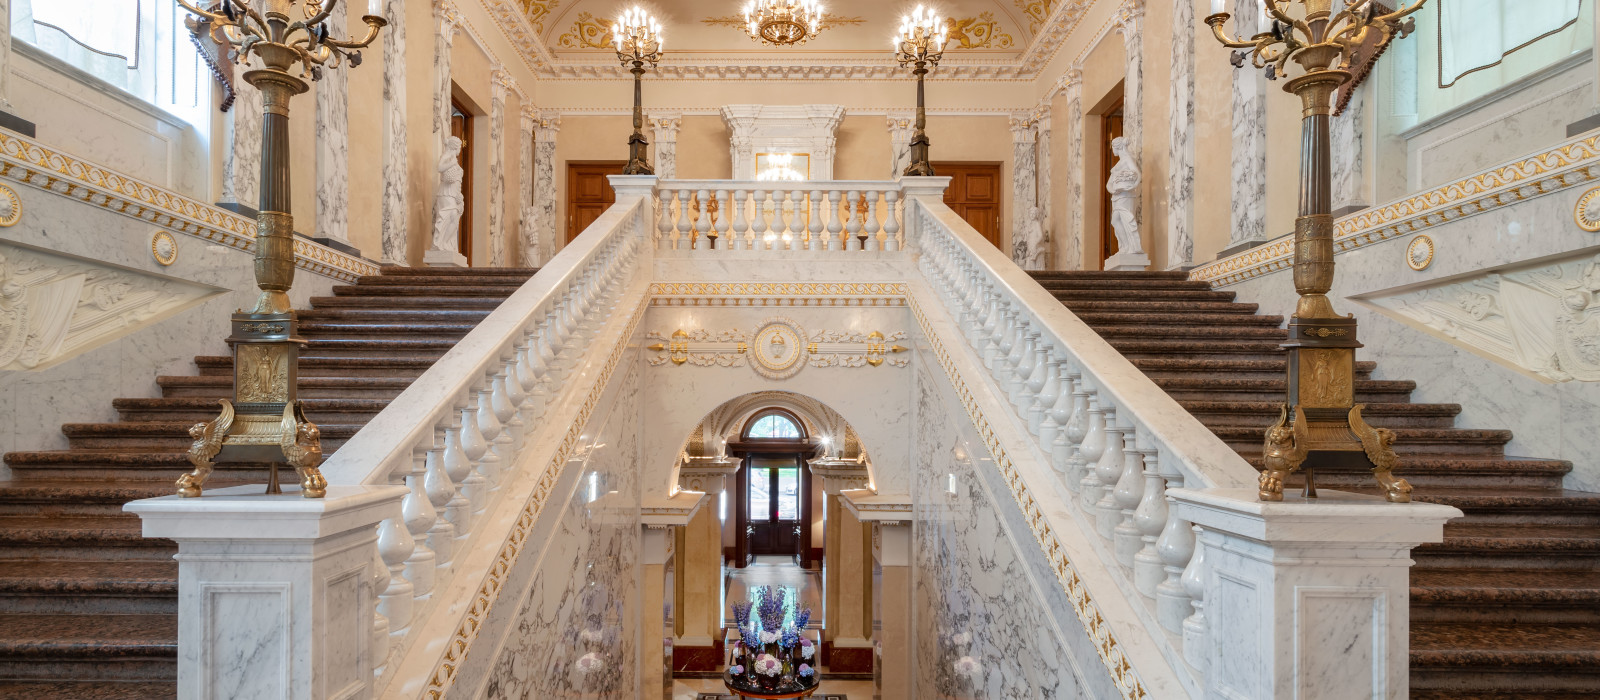 Hotel Four Seasons  Lion Palace St. Petersburg Russia